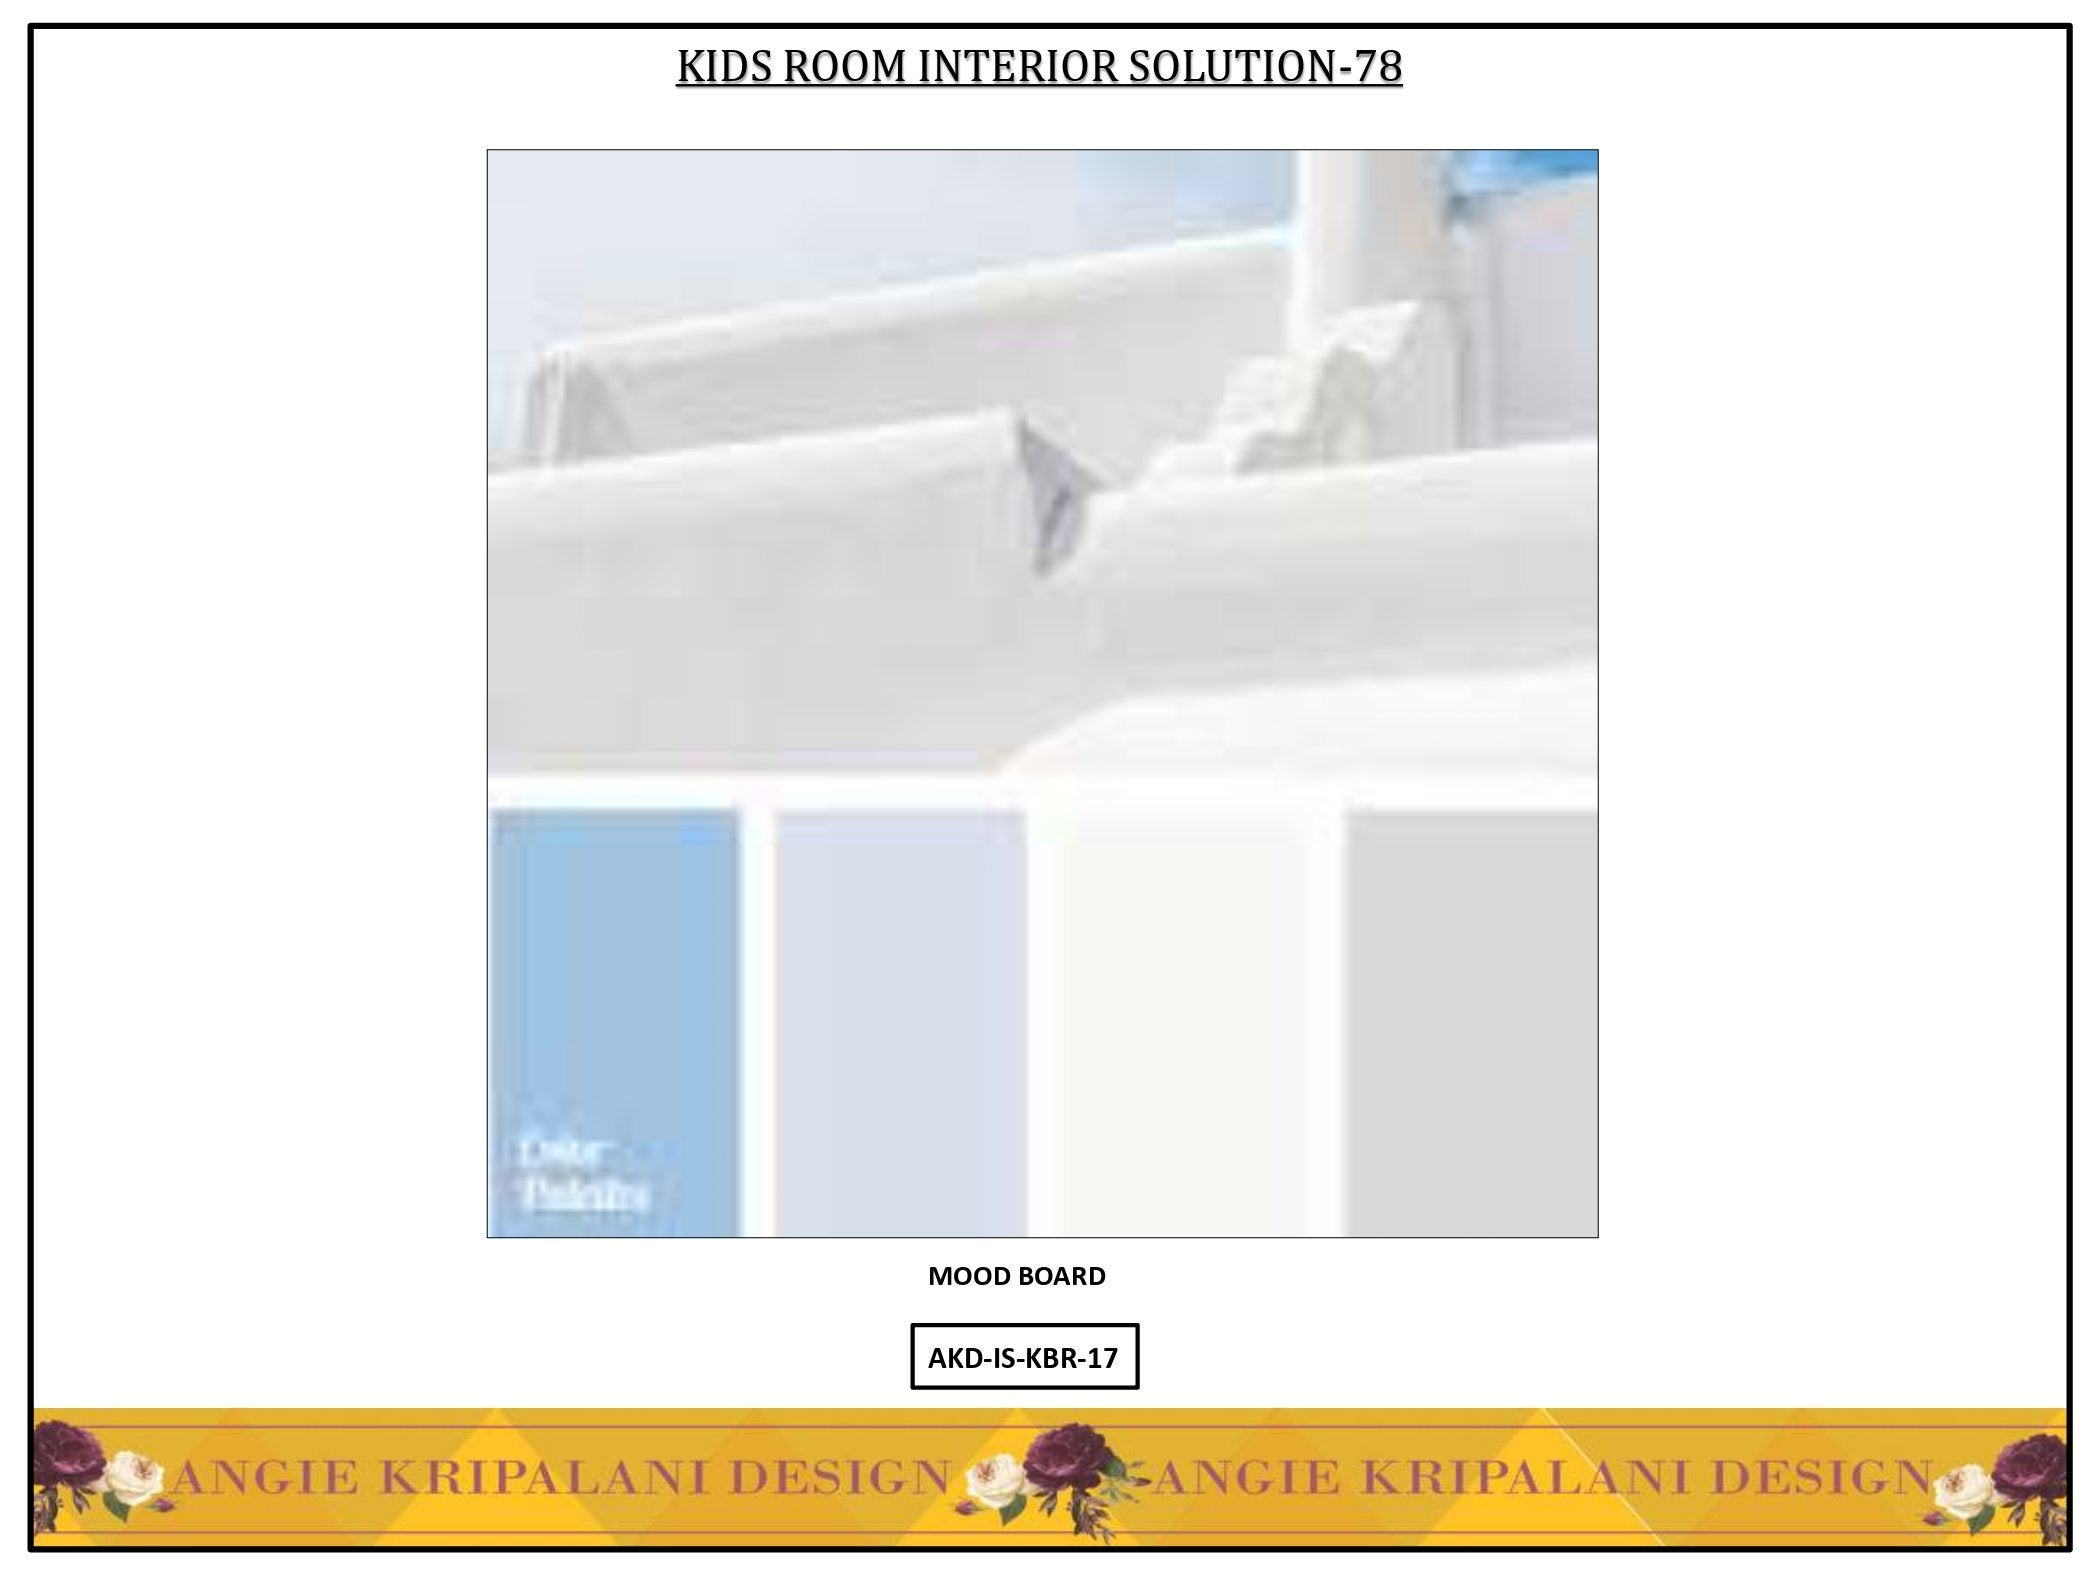 KIDS BED ROOM INTERIOR SOLUTION-78 ANGIE HOMES